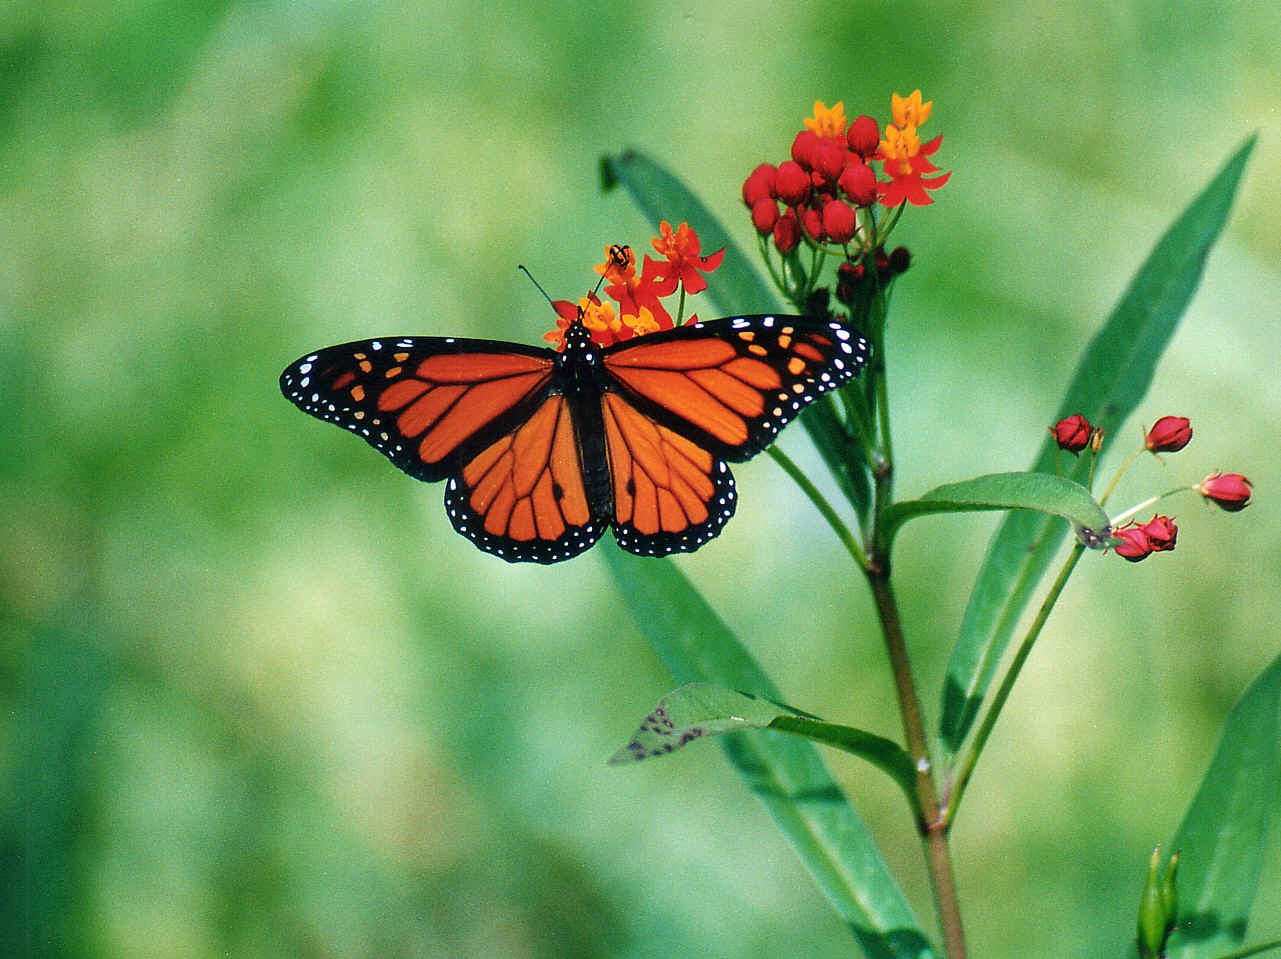 Beautiful Pictures Of Flowers And Butterflies Birds Desktop Wallpapers Animals Wallpapers Flowers Wallpapers